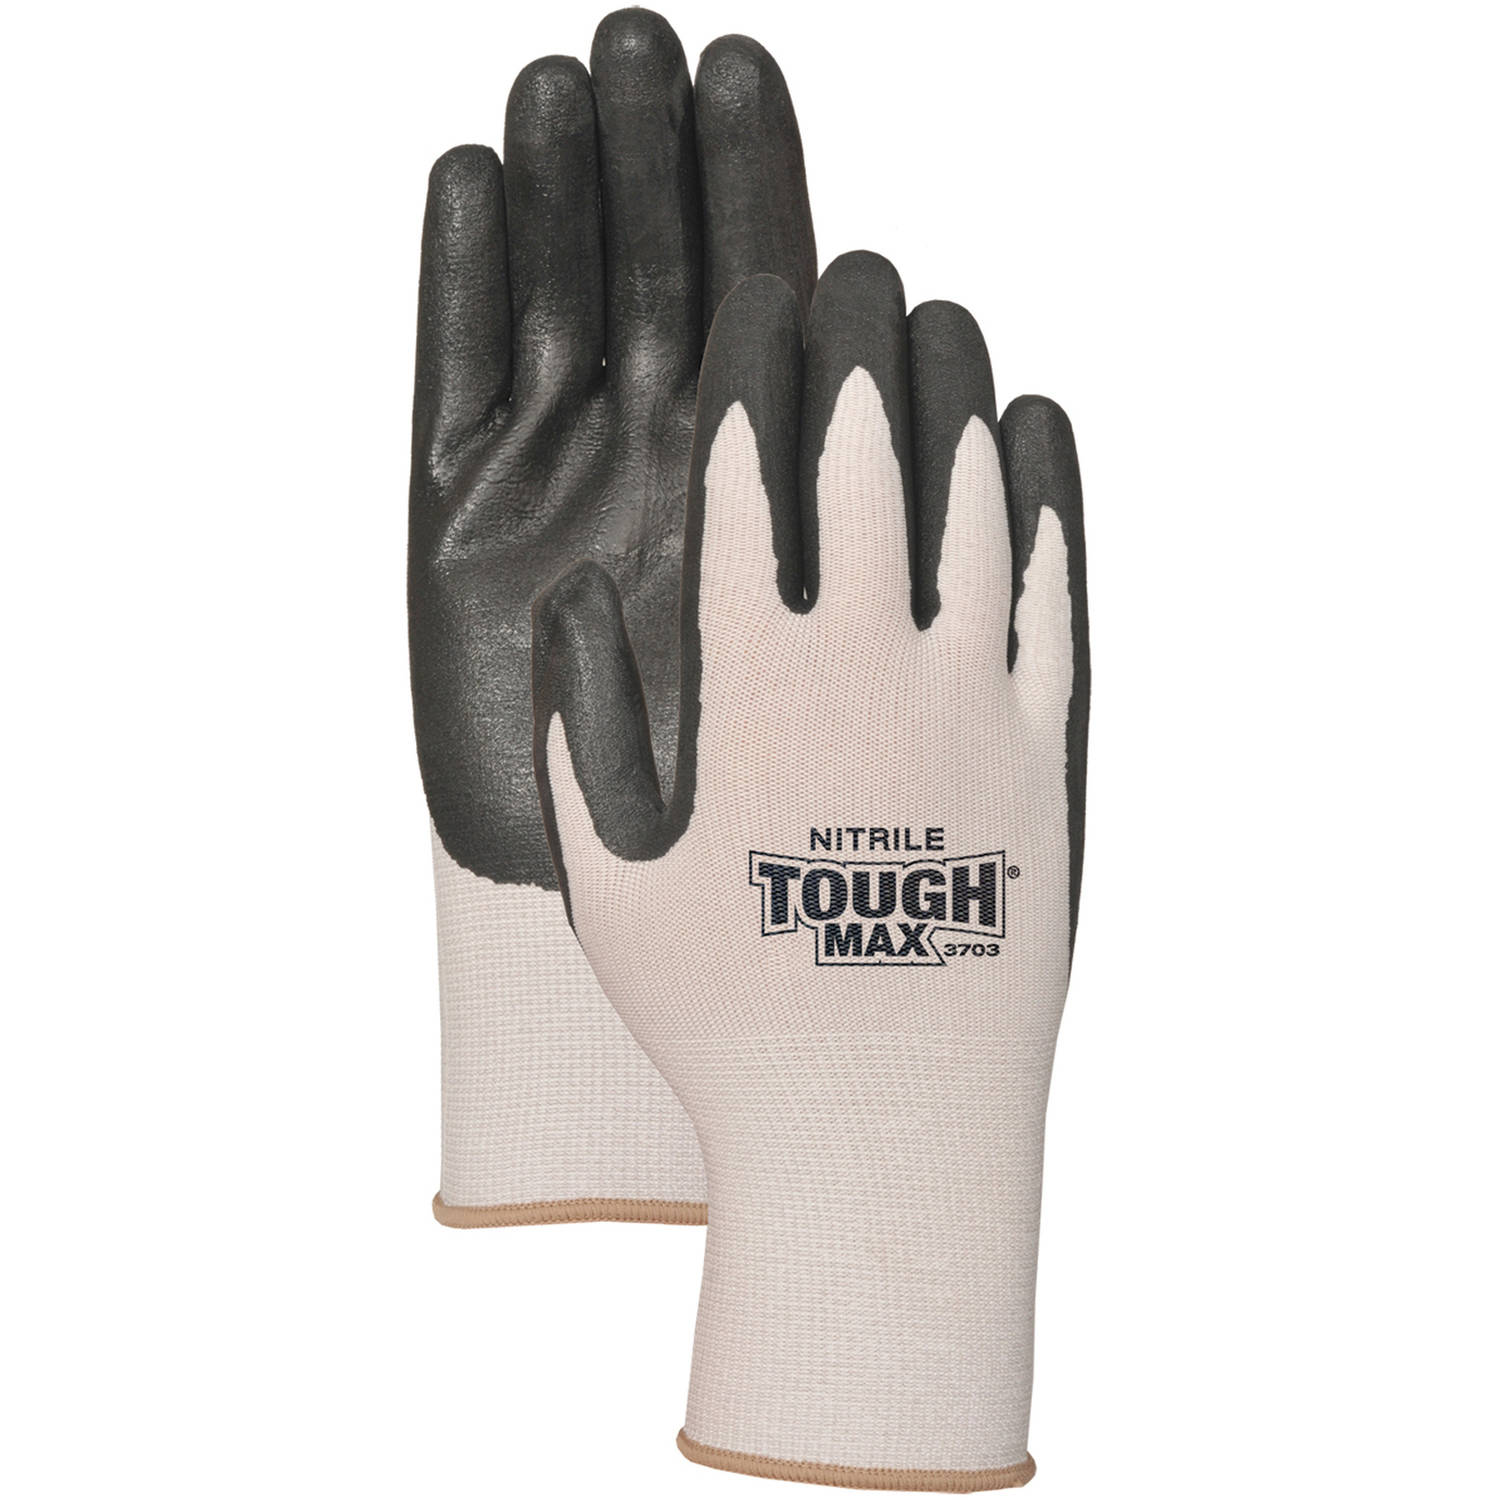 Bellingham Glove C3703S Small Nitrile with Cool Max Gloves